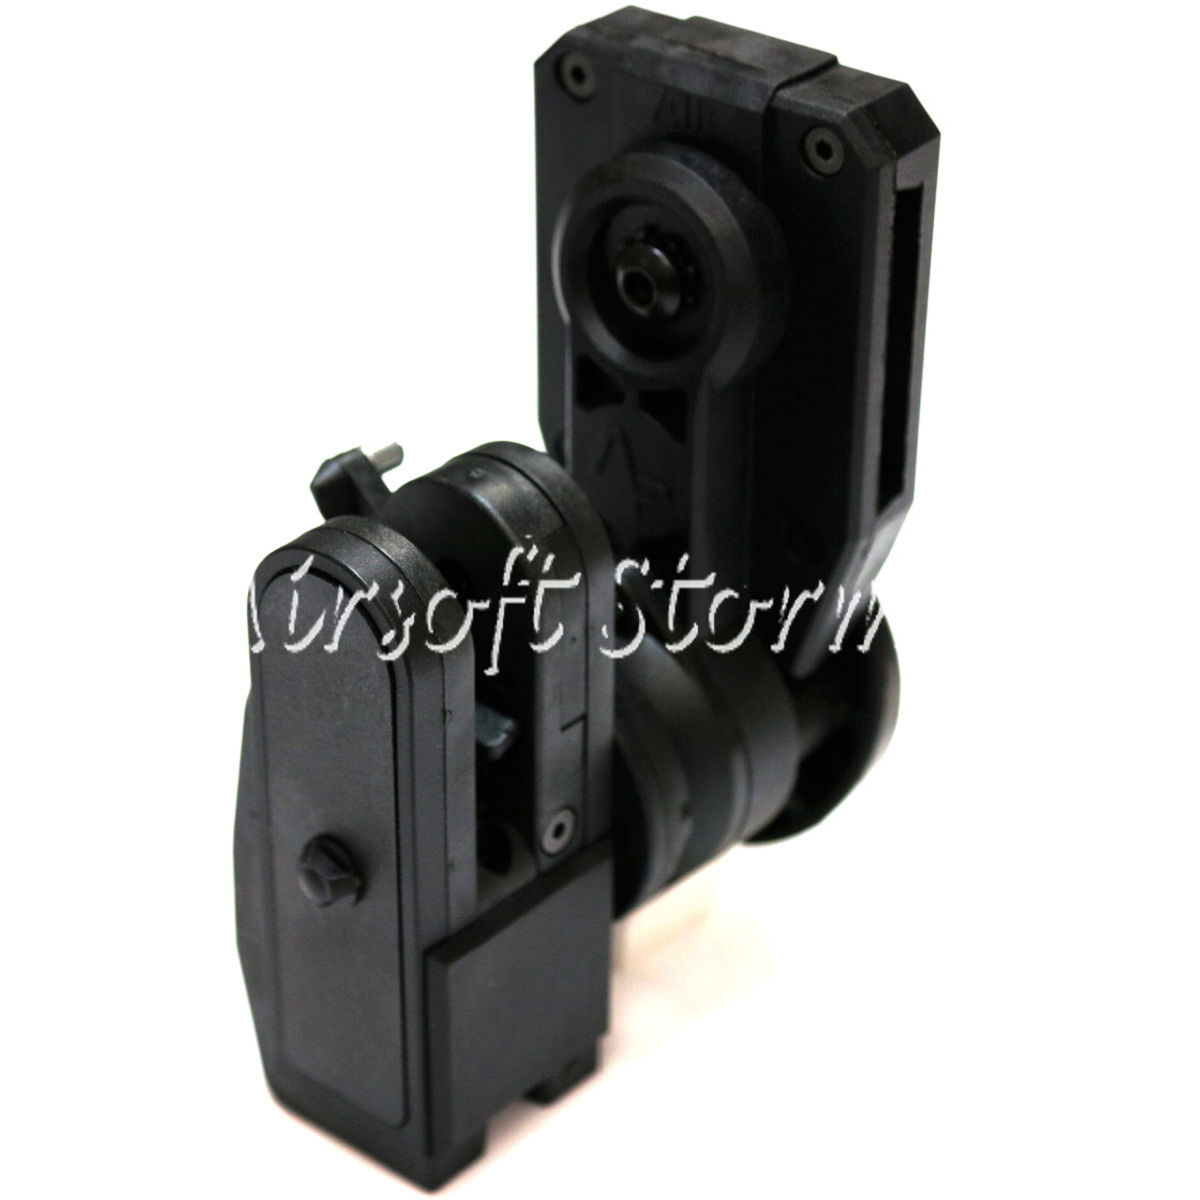 AIP Multi-Angle IPSC Speed Holster for Hi-Capa/Glock/1911